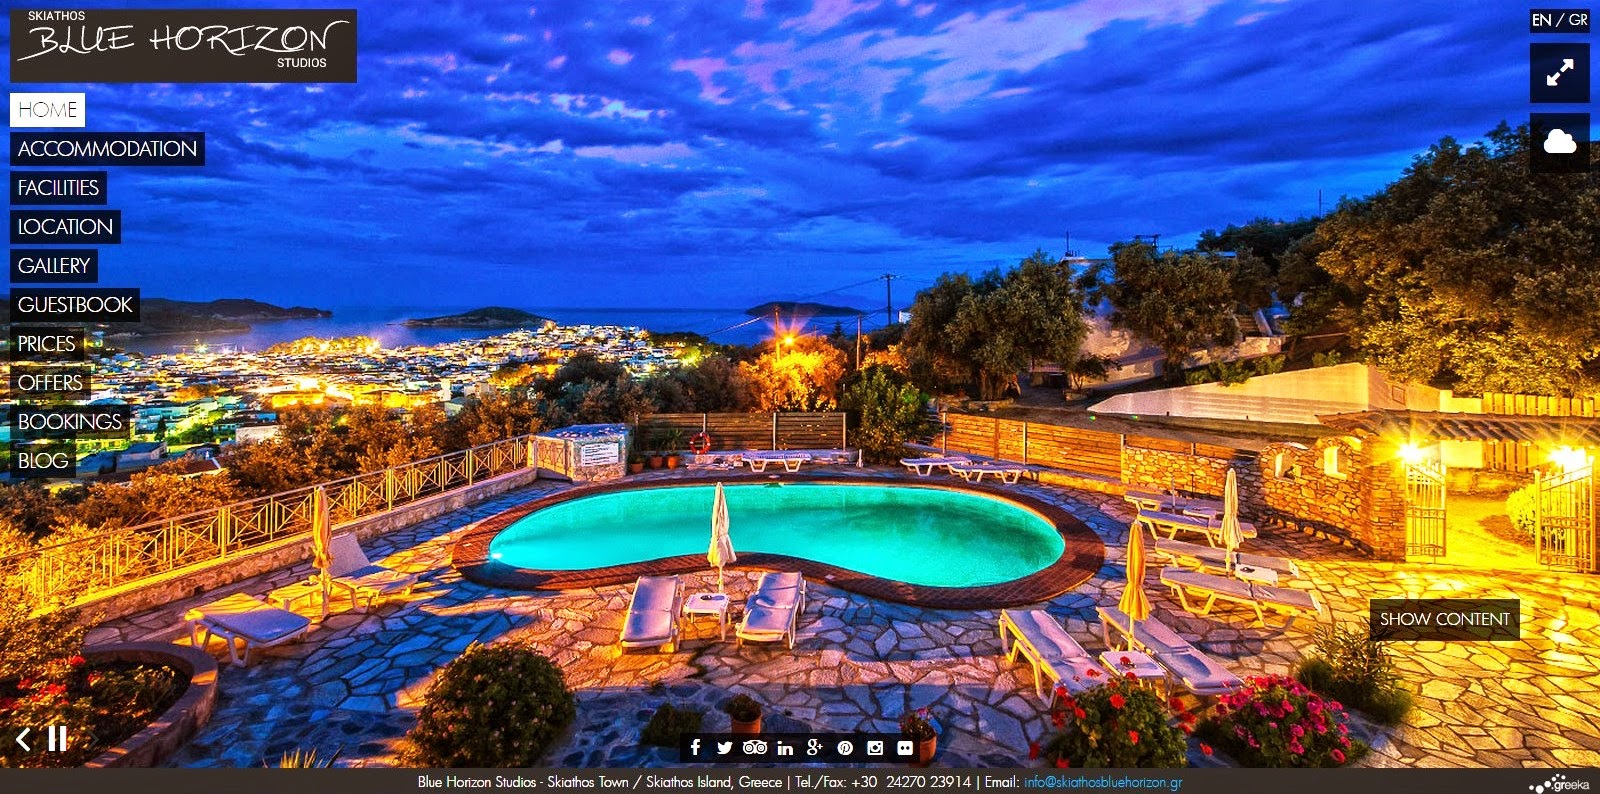 Skiathos Accommodation